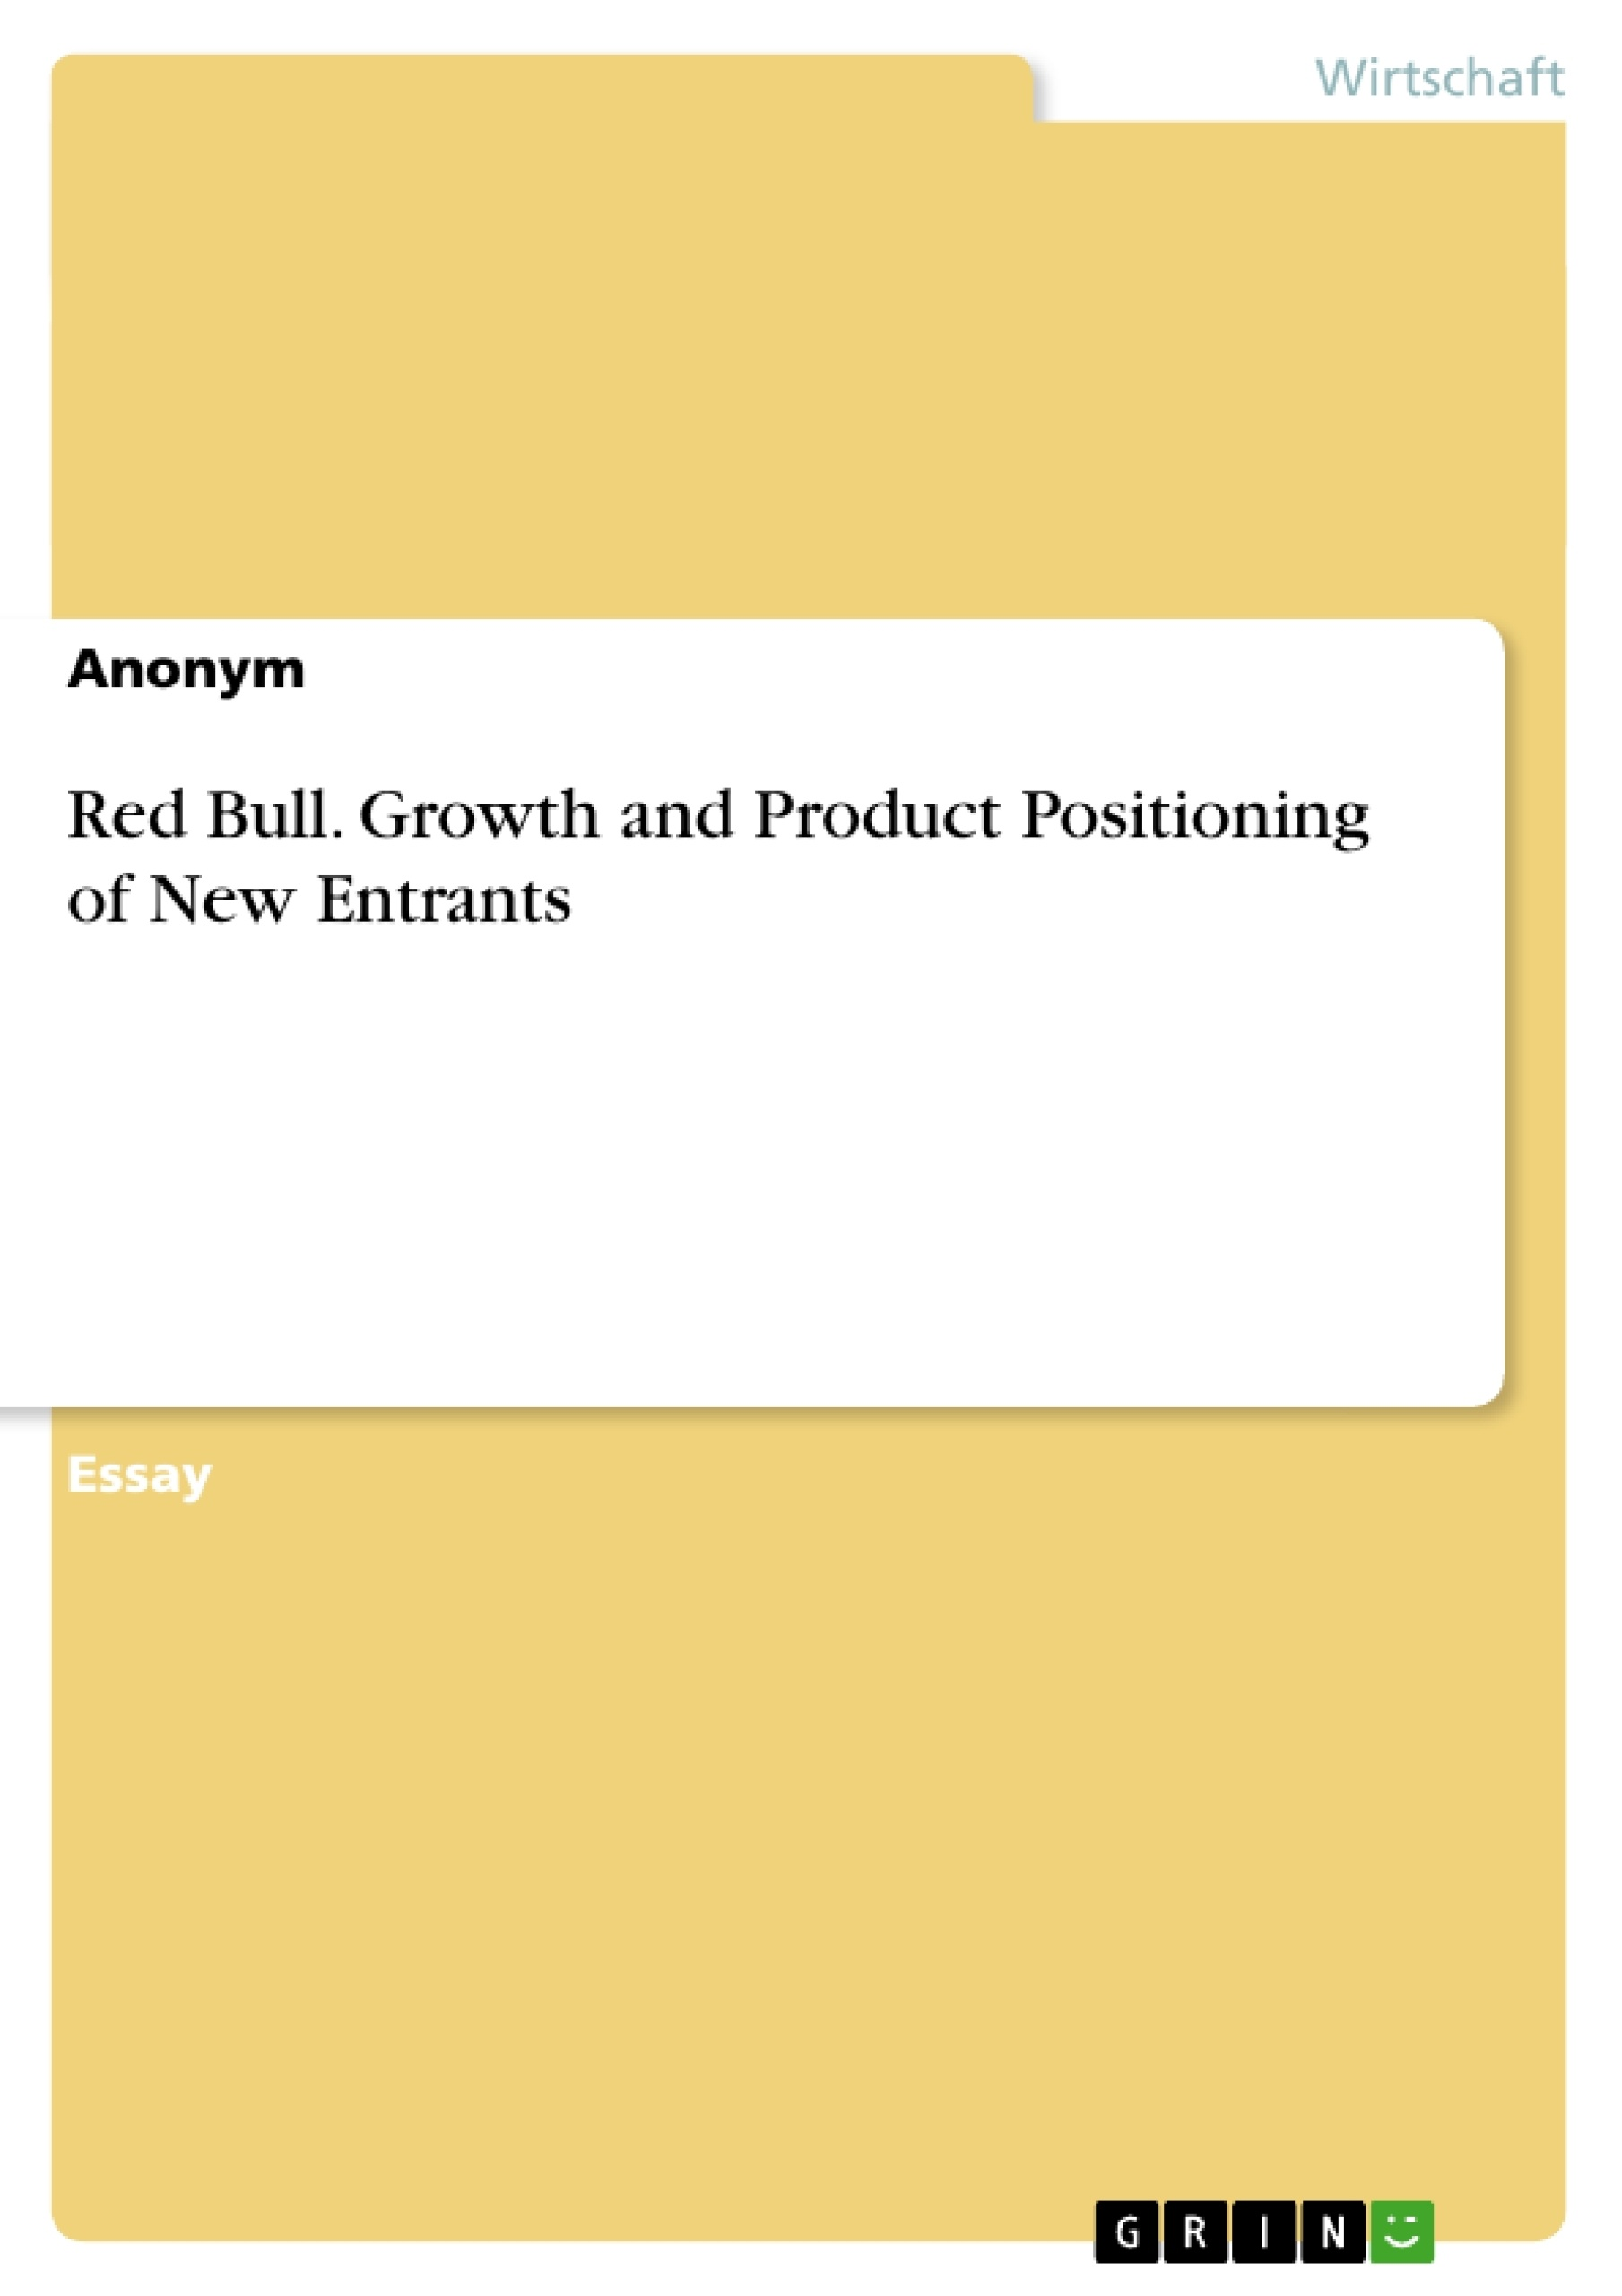 Titel: Red Bull. Growth and Product Positioning of New Entrants